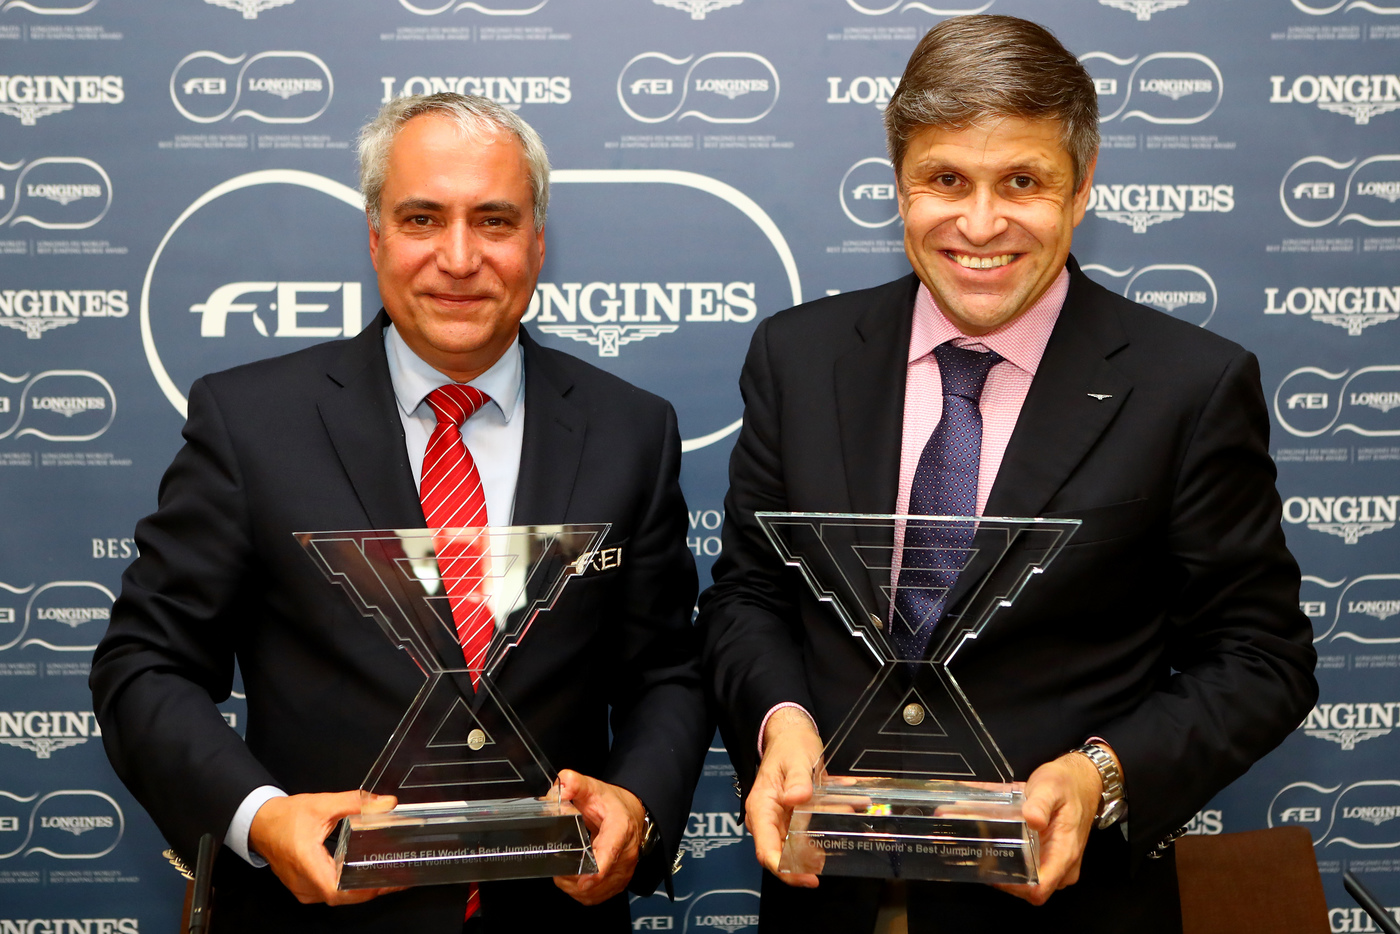 Longines Show Jumping Event: Longines and FEI reveal the Longines FEI World's Best Jumping Rider & Horse Awards 1